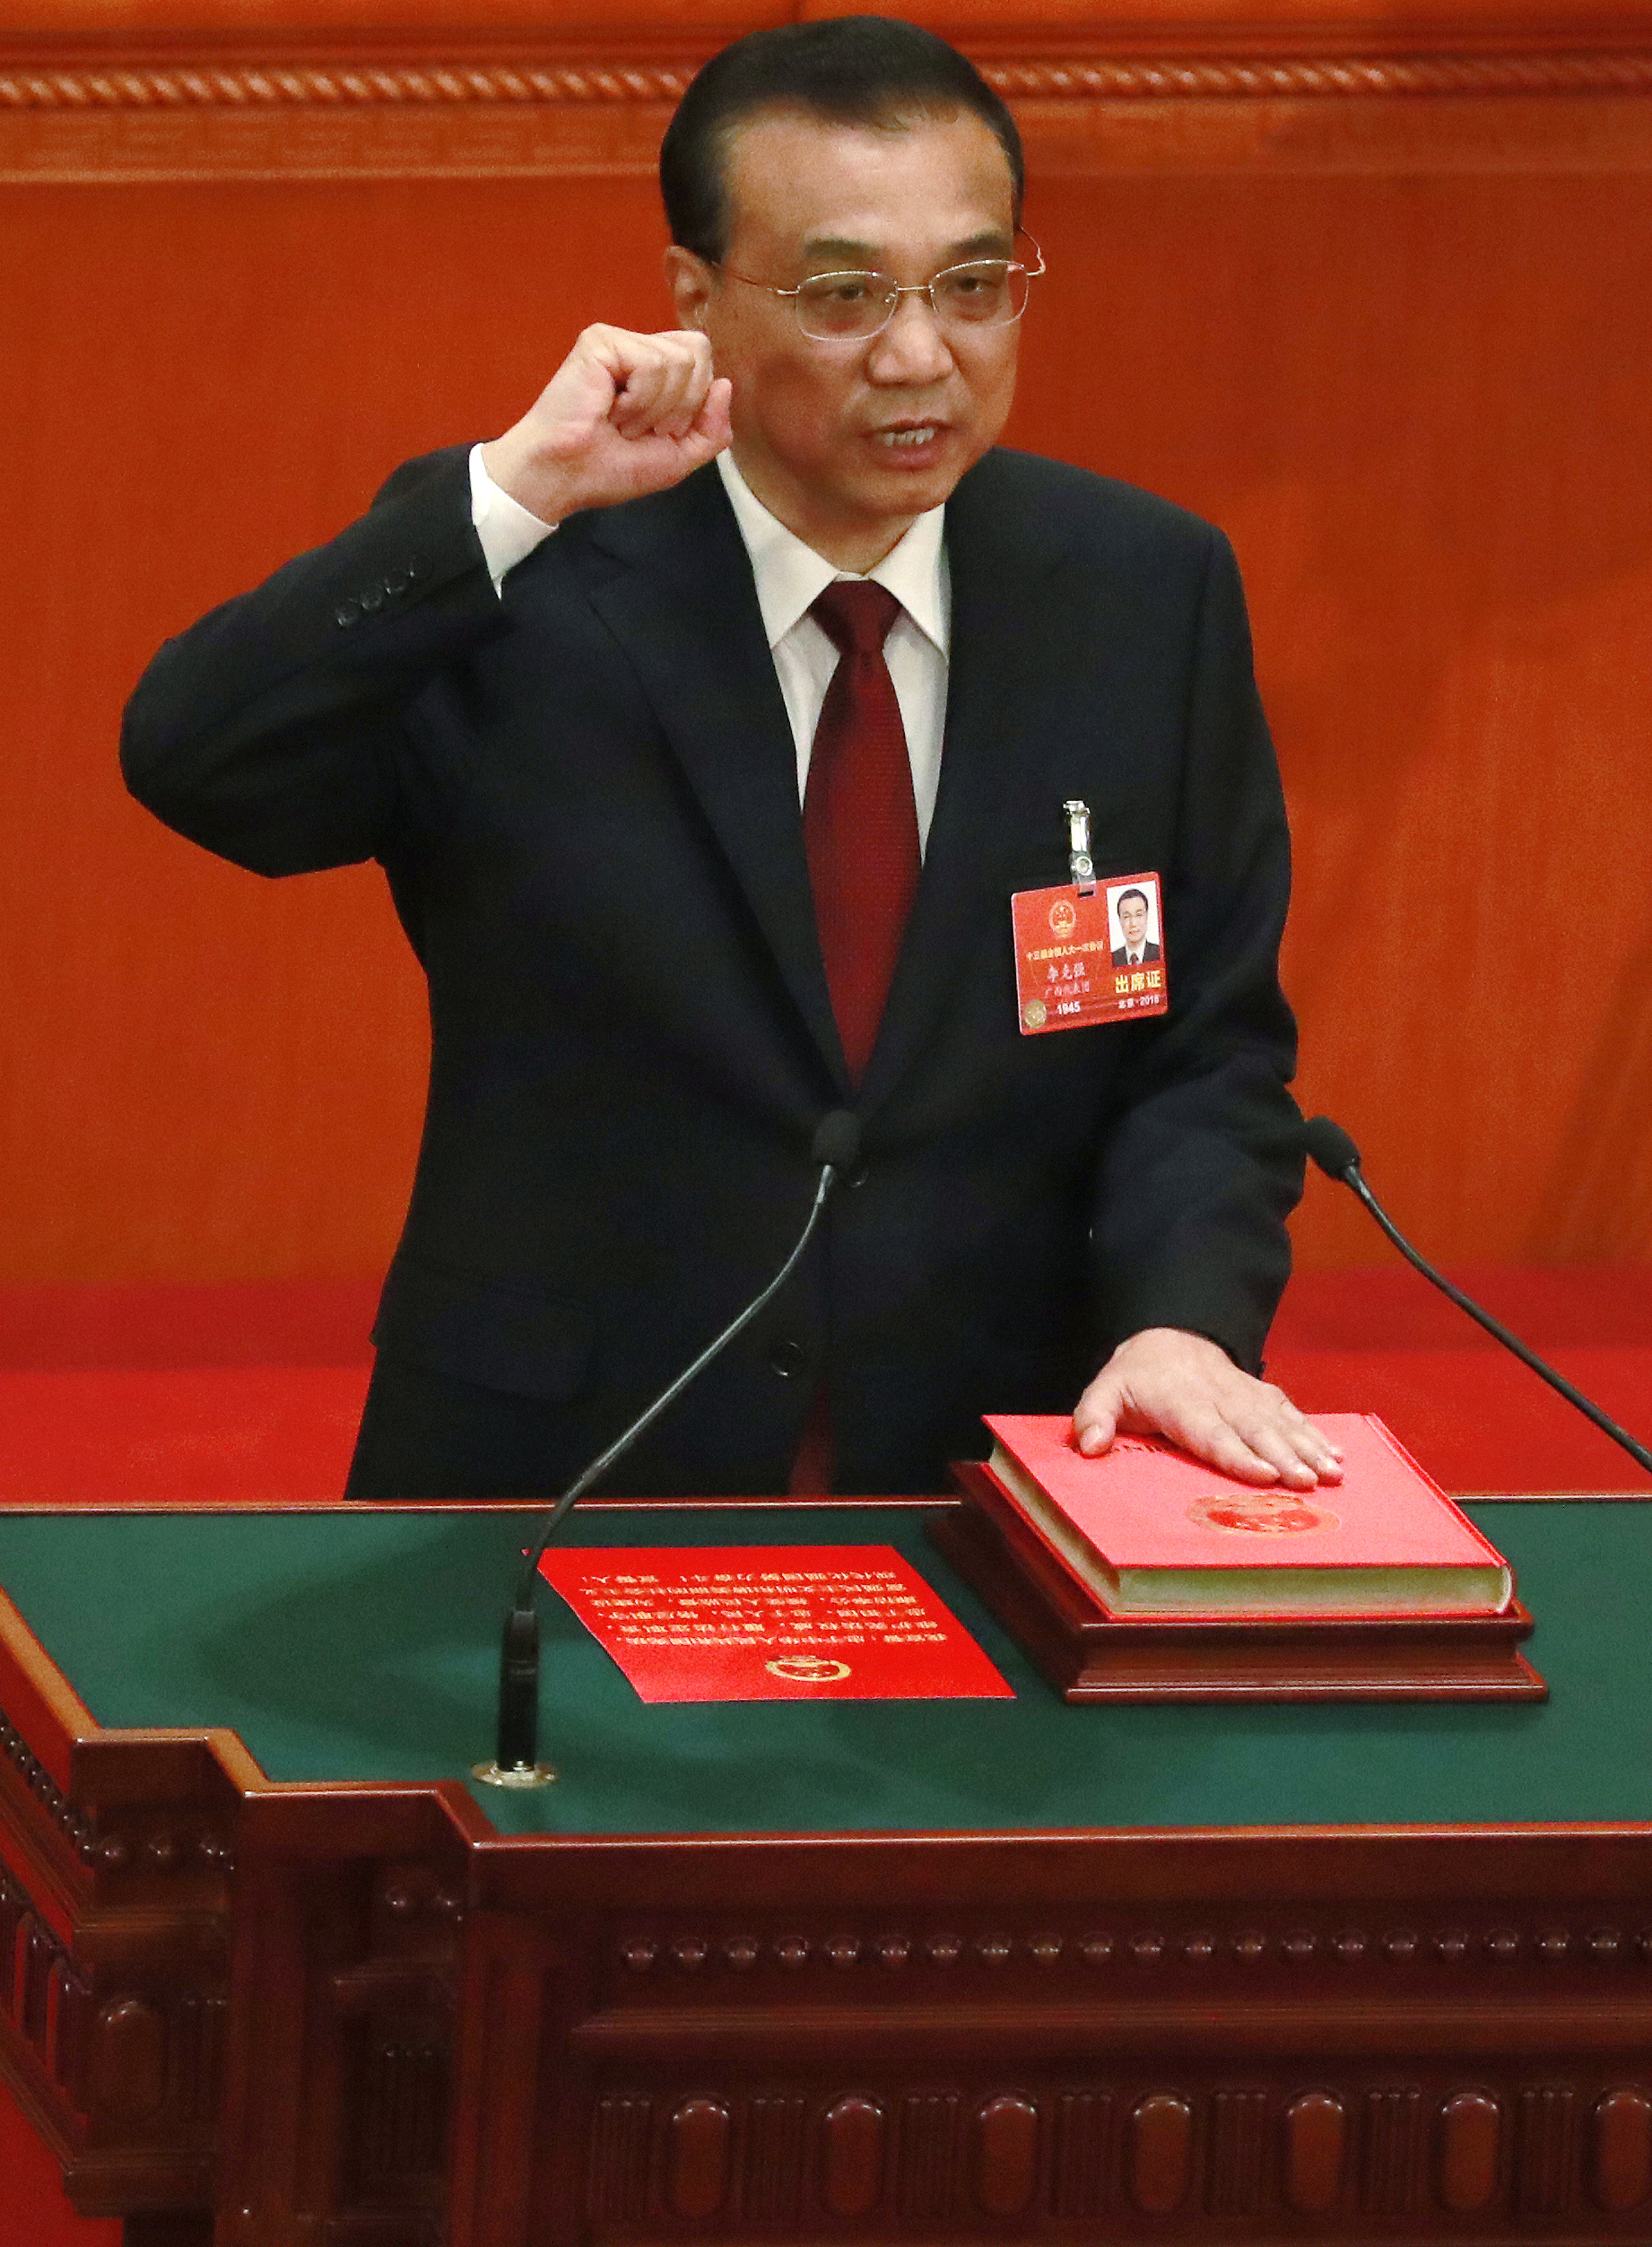 Chinese Premier Li Keqiang swears an oath with his hand on the constitution after being re-elected as premier at the 6th plenary session of the first session of the 13th National People's Congress (NPC) at the Great Hall of the People in Beijing, China, 18 March 2018. Delegates of the NPC vote on 18 March to decide on the appointment of the premier, and vice chairpersons of the Central Military Commission (CMC). The NPC has over 3,000 delegates and is the world's largest parliament or legislative assembly though its function is largely as a formal seal of approval for the policies fixed by the leaders of the Chinese Communist Party. The NPC runs alongside the annual plenary meetings of the Chinese People's Political Consultative Conference (CPPCC), together known as 'Lianghui' or 'Two Meetings'.